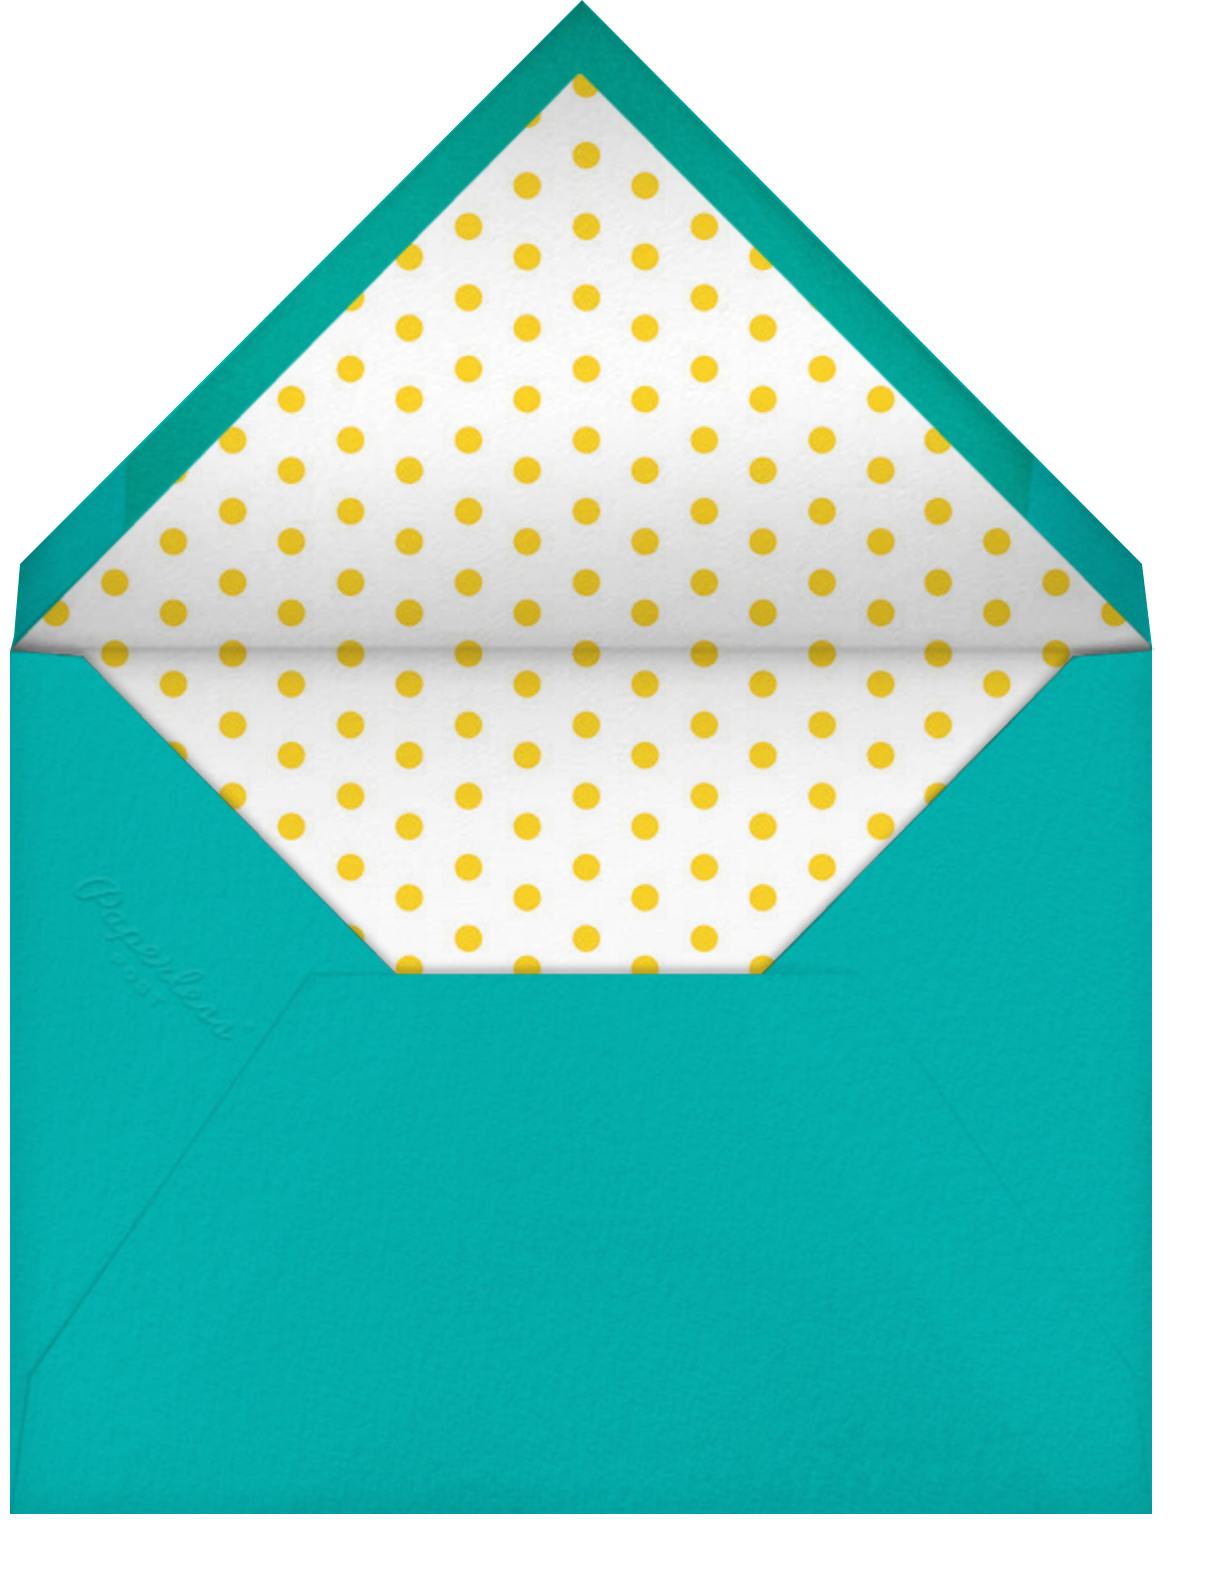 Eat Cake for Breakfast (Tall) - kate spade new york - Birthday - envelope back